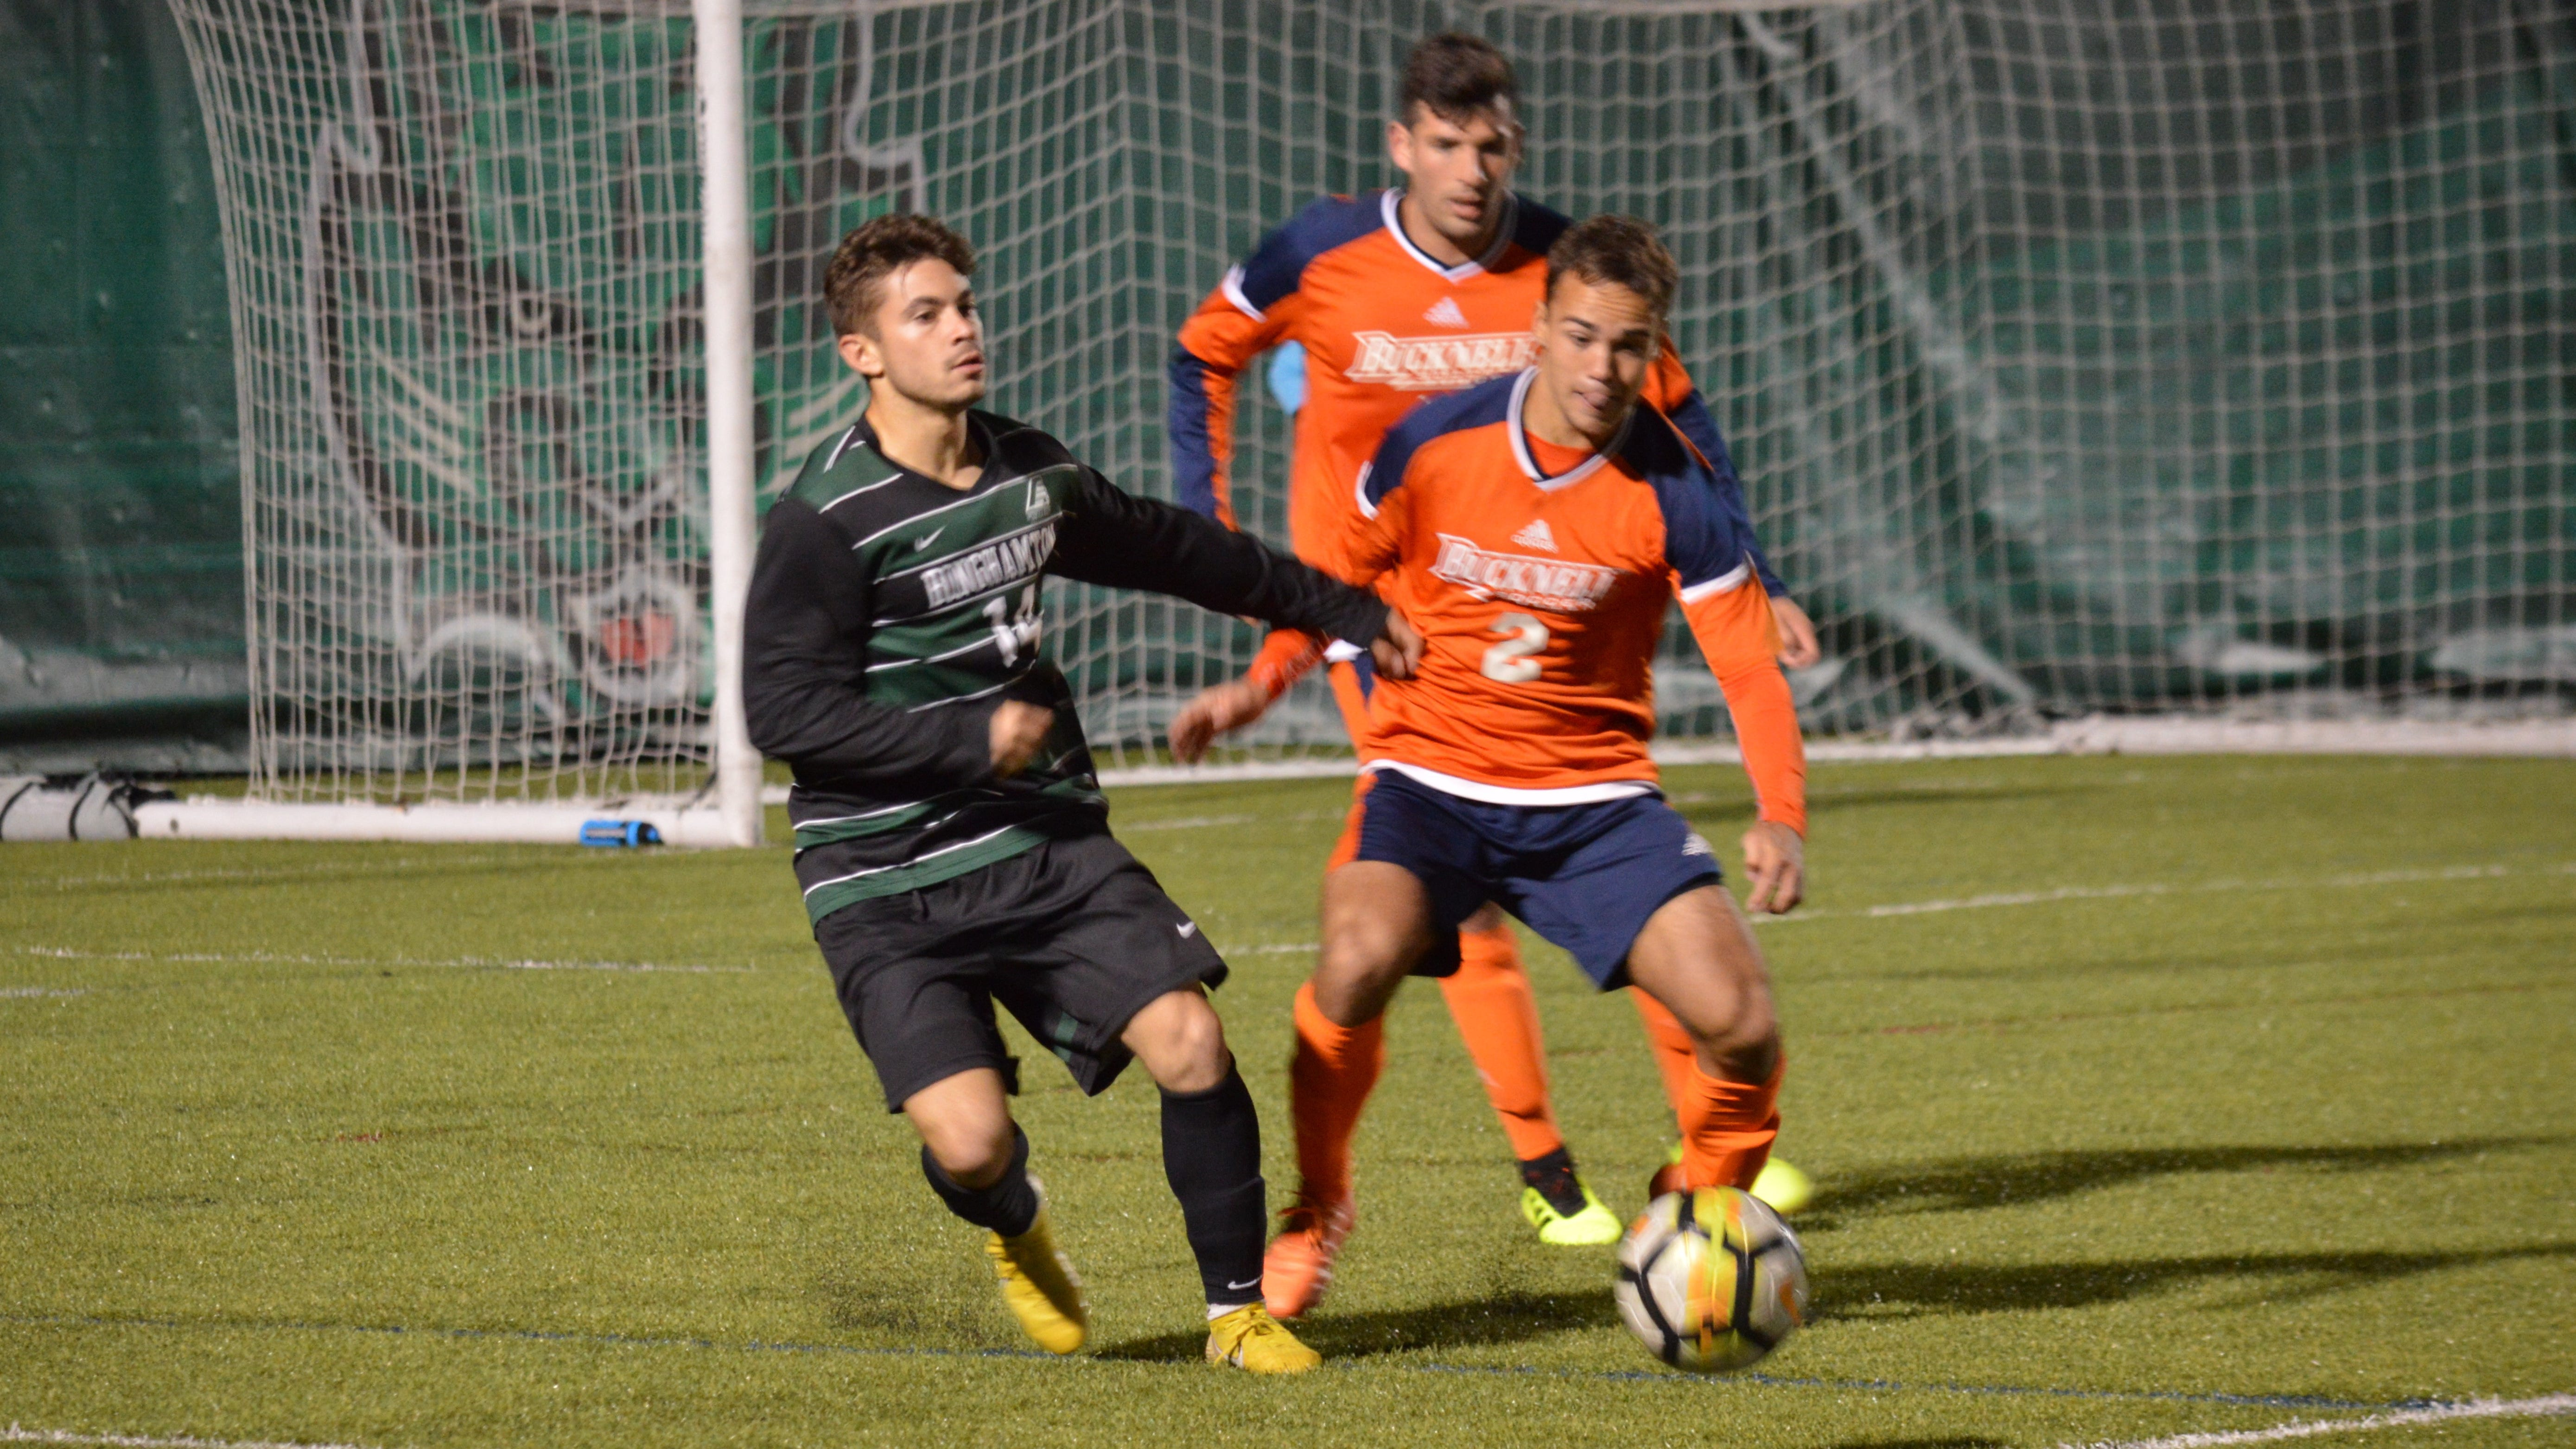 Binghamton University's Connor McKnight and Bucknell's Daniel Halloway battle for possession in Tuesday's non-conference game at BU. The Bearcats lost, 2-1.